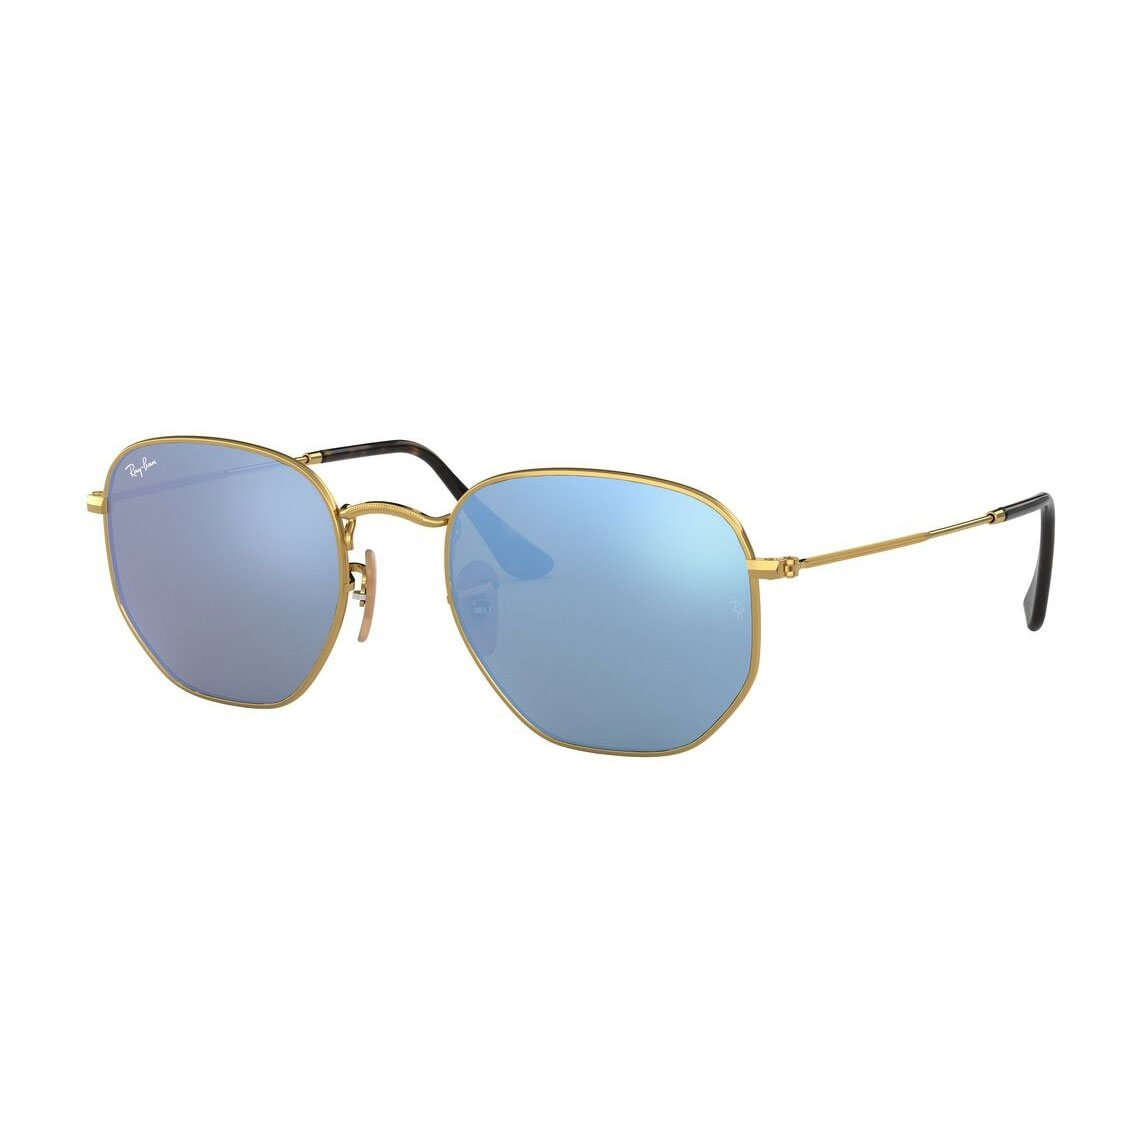 Ray-Ban Hexagonal flat lenses RB3548N 001/9O 48